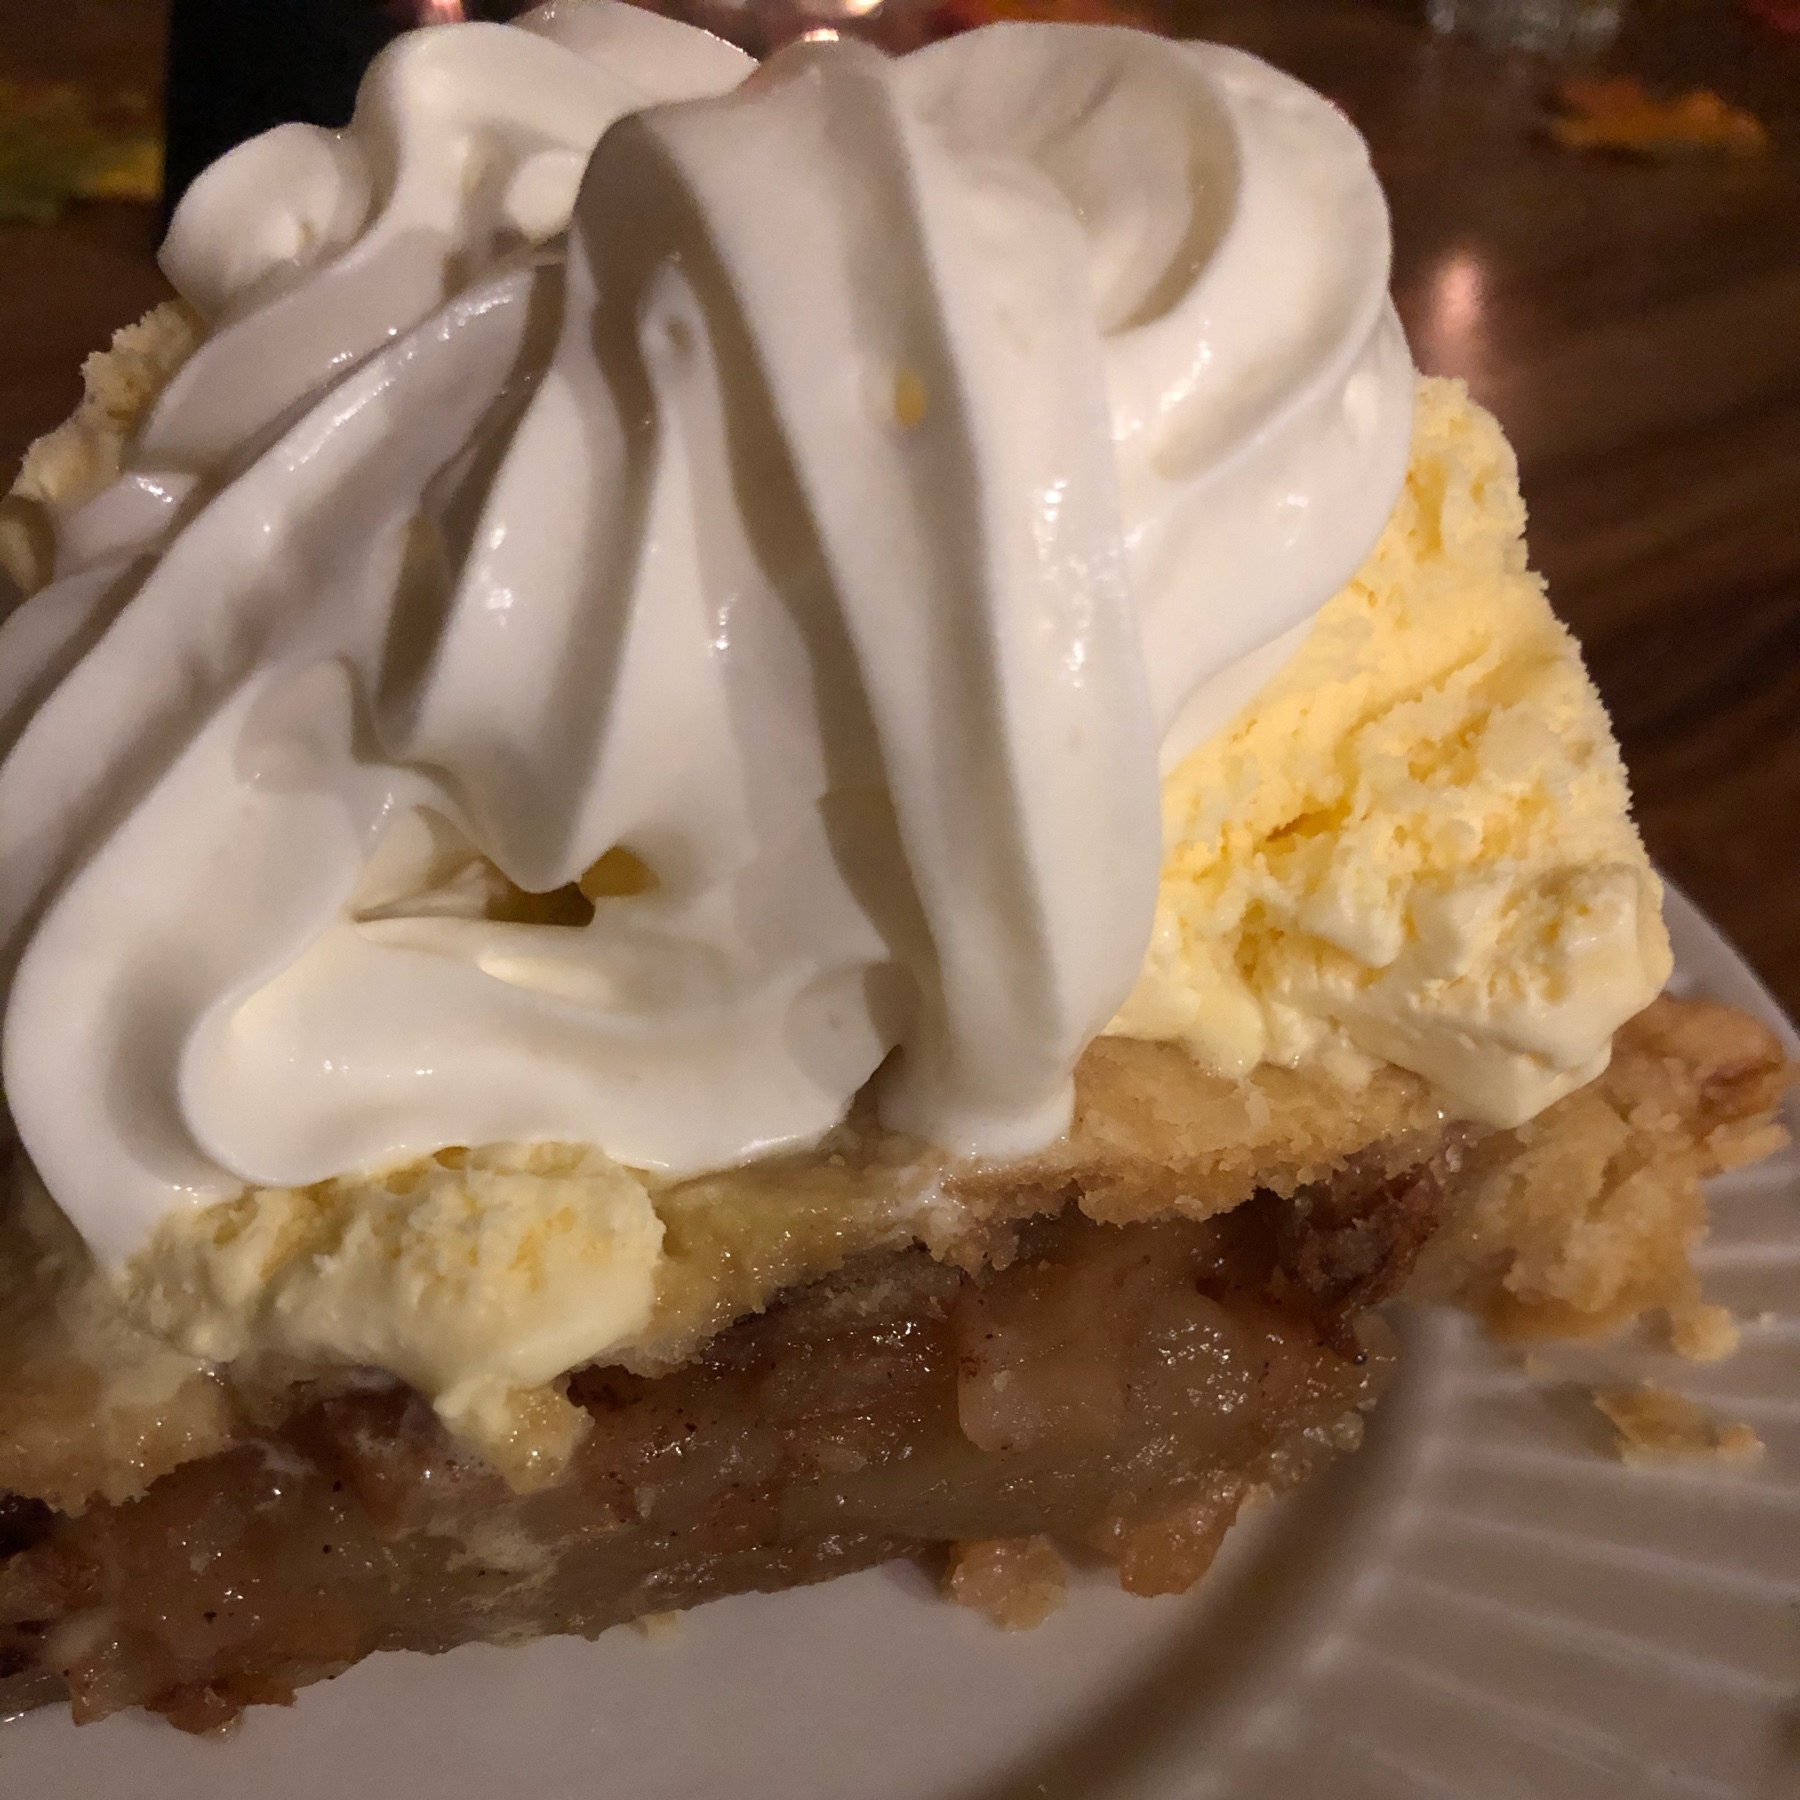 a slice of apple pie with whopped cream on top